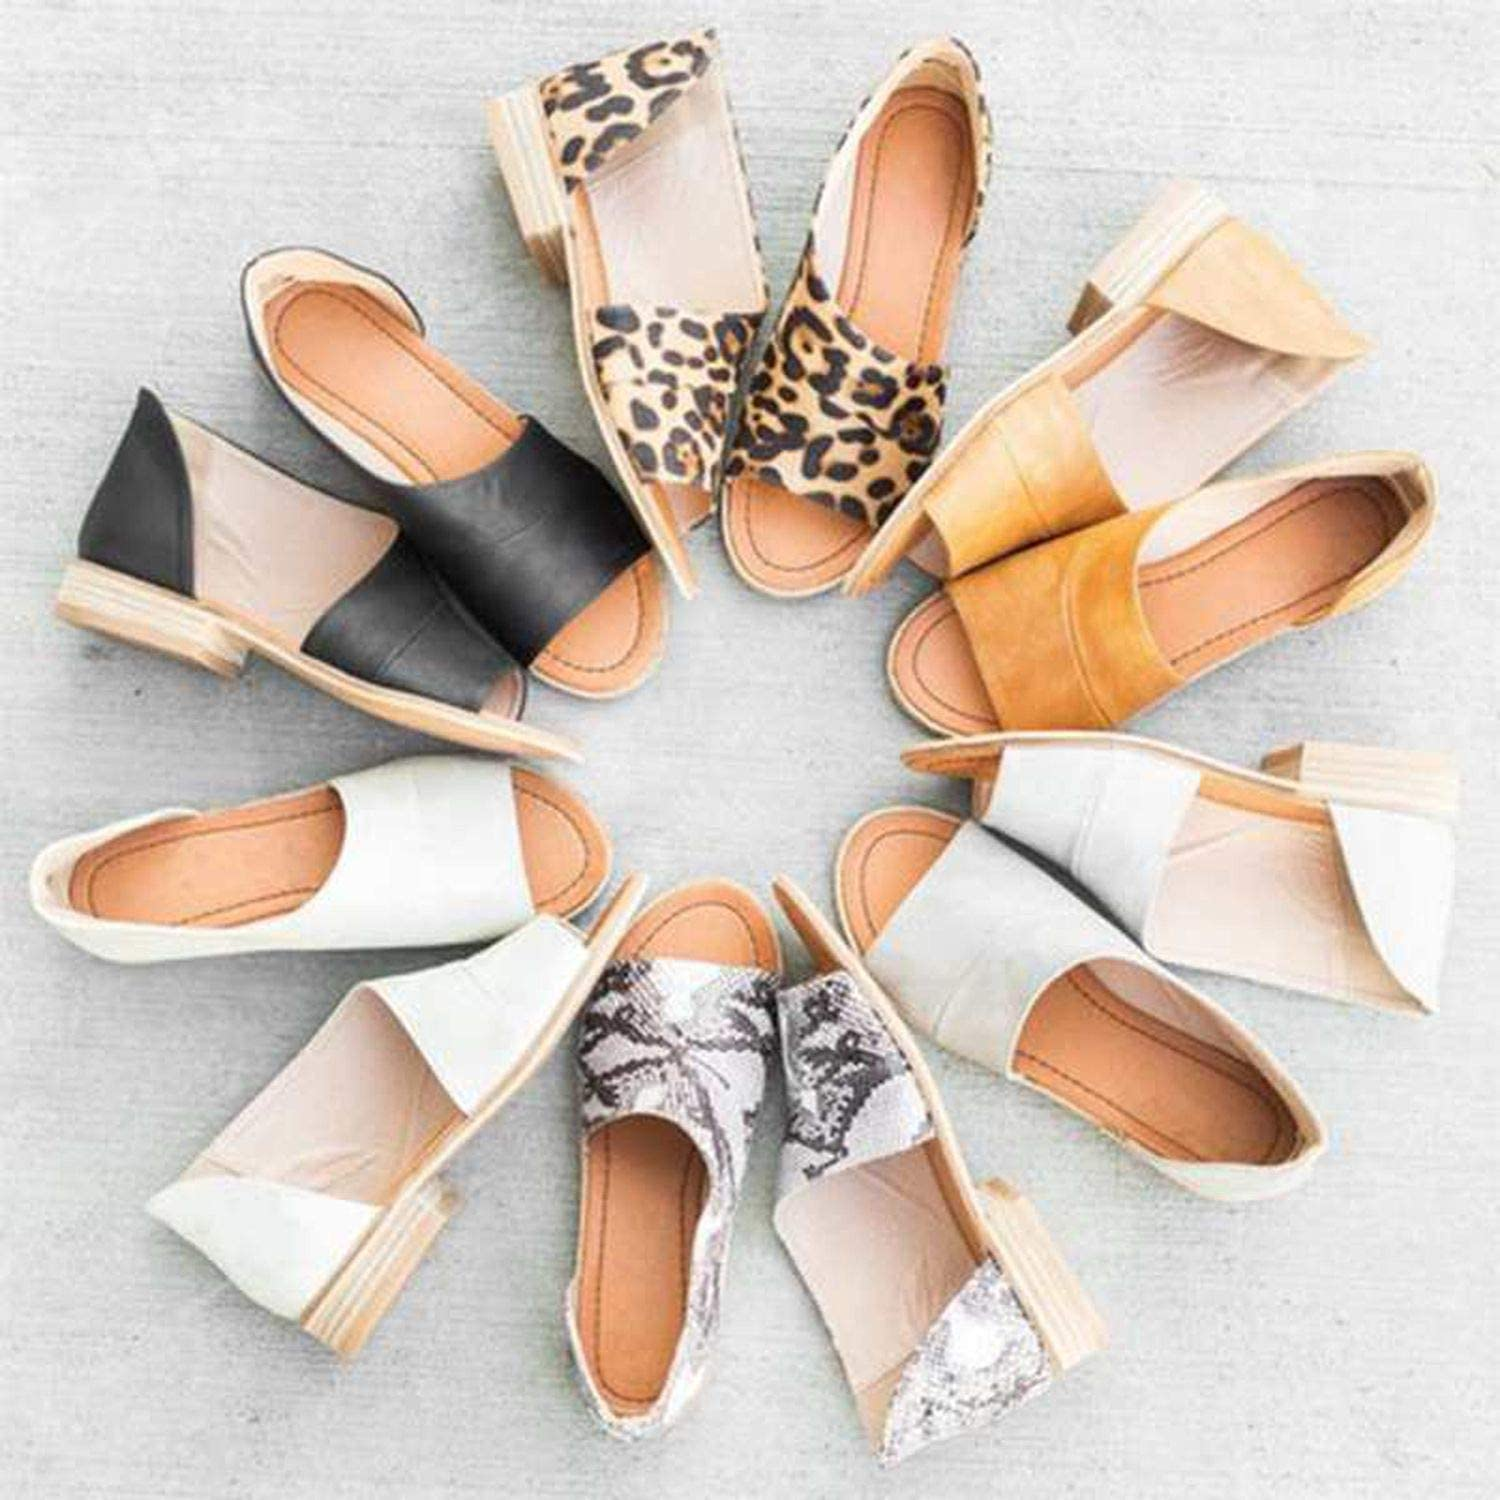 better-caress Woman Slip Footwear Chaussure Casual Sandals Peep Toe Chunky Low Heels s ies,A,10